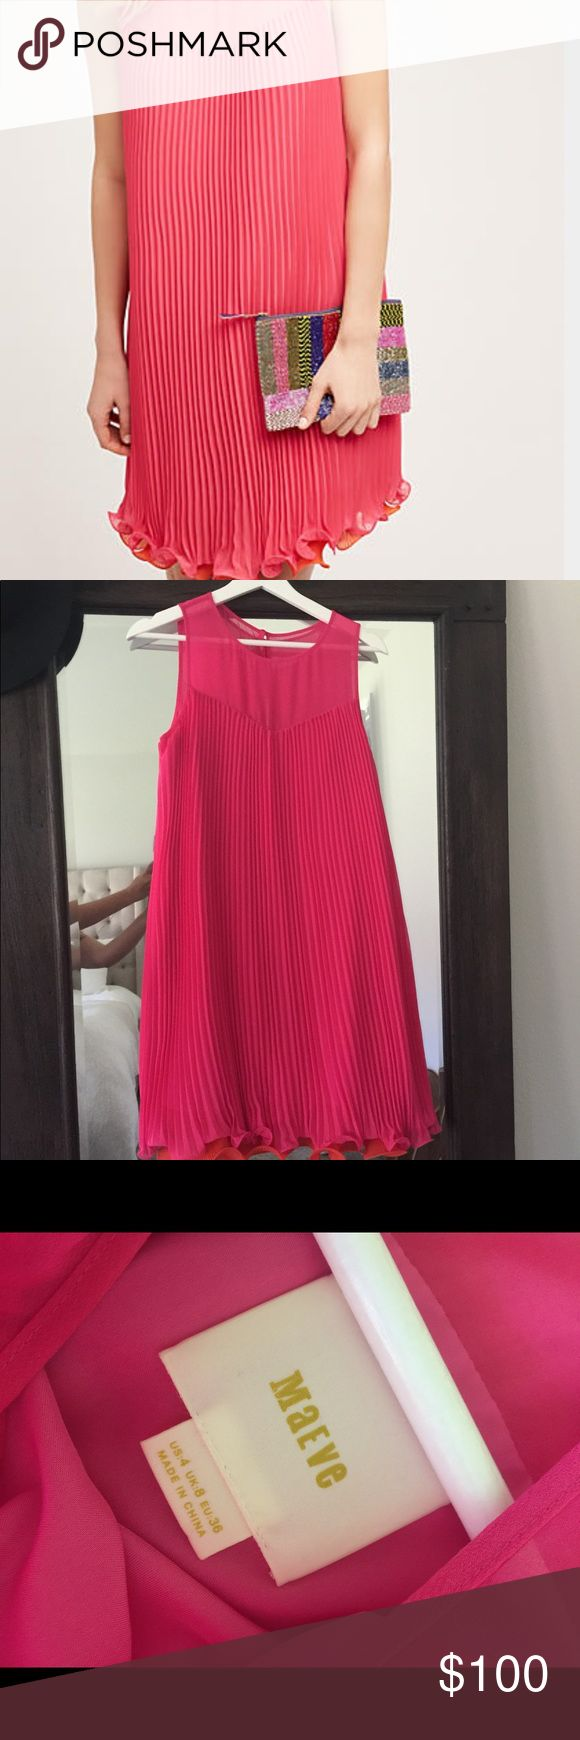 "Like New Anthropologie Layered Pleat Swing Dress Super cute like new Anthropologie layered pleat swing dress by Maeve. Only worn once for a few hours. Size 4. I'm 5""3 and it falls right above the knee. Hot pink top layer and orange under pleat. Back zip. Dry clean only. Anthropologie Dresses"